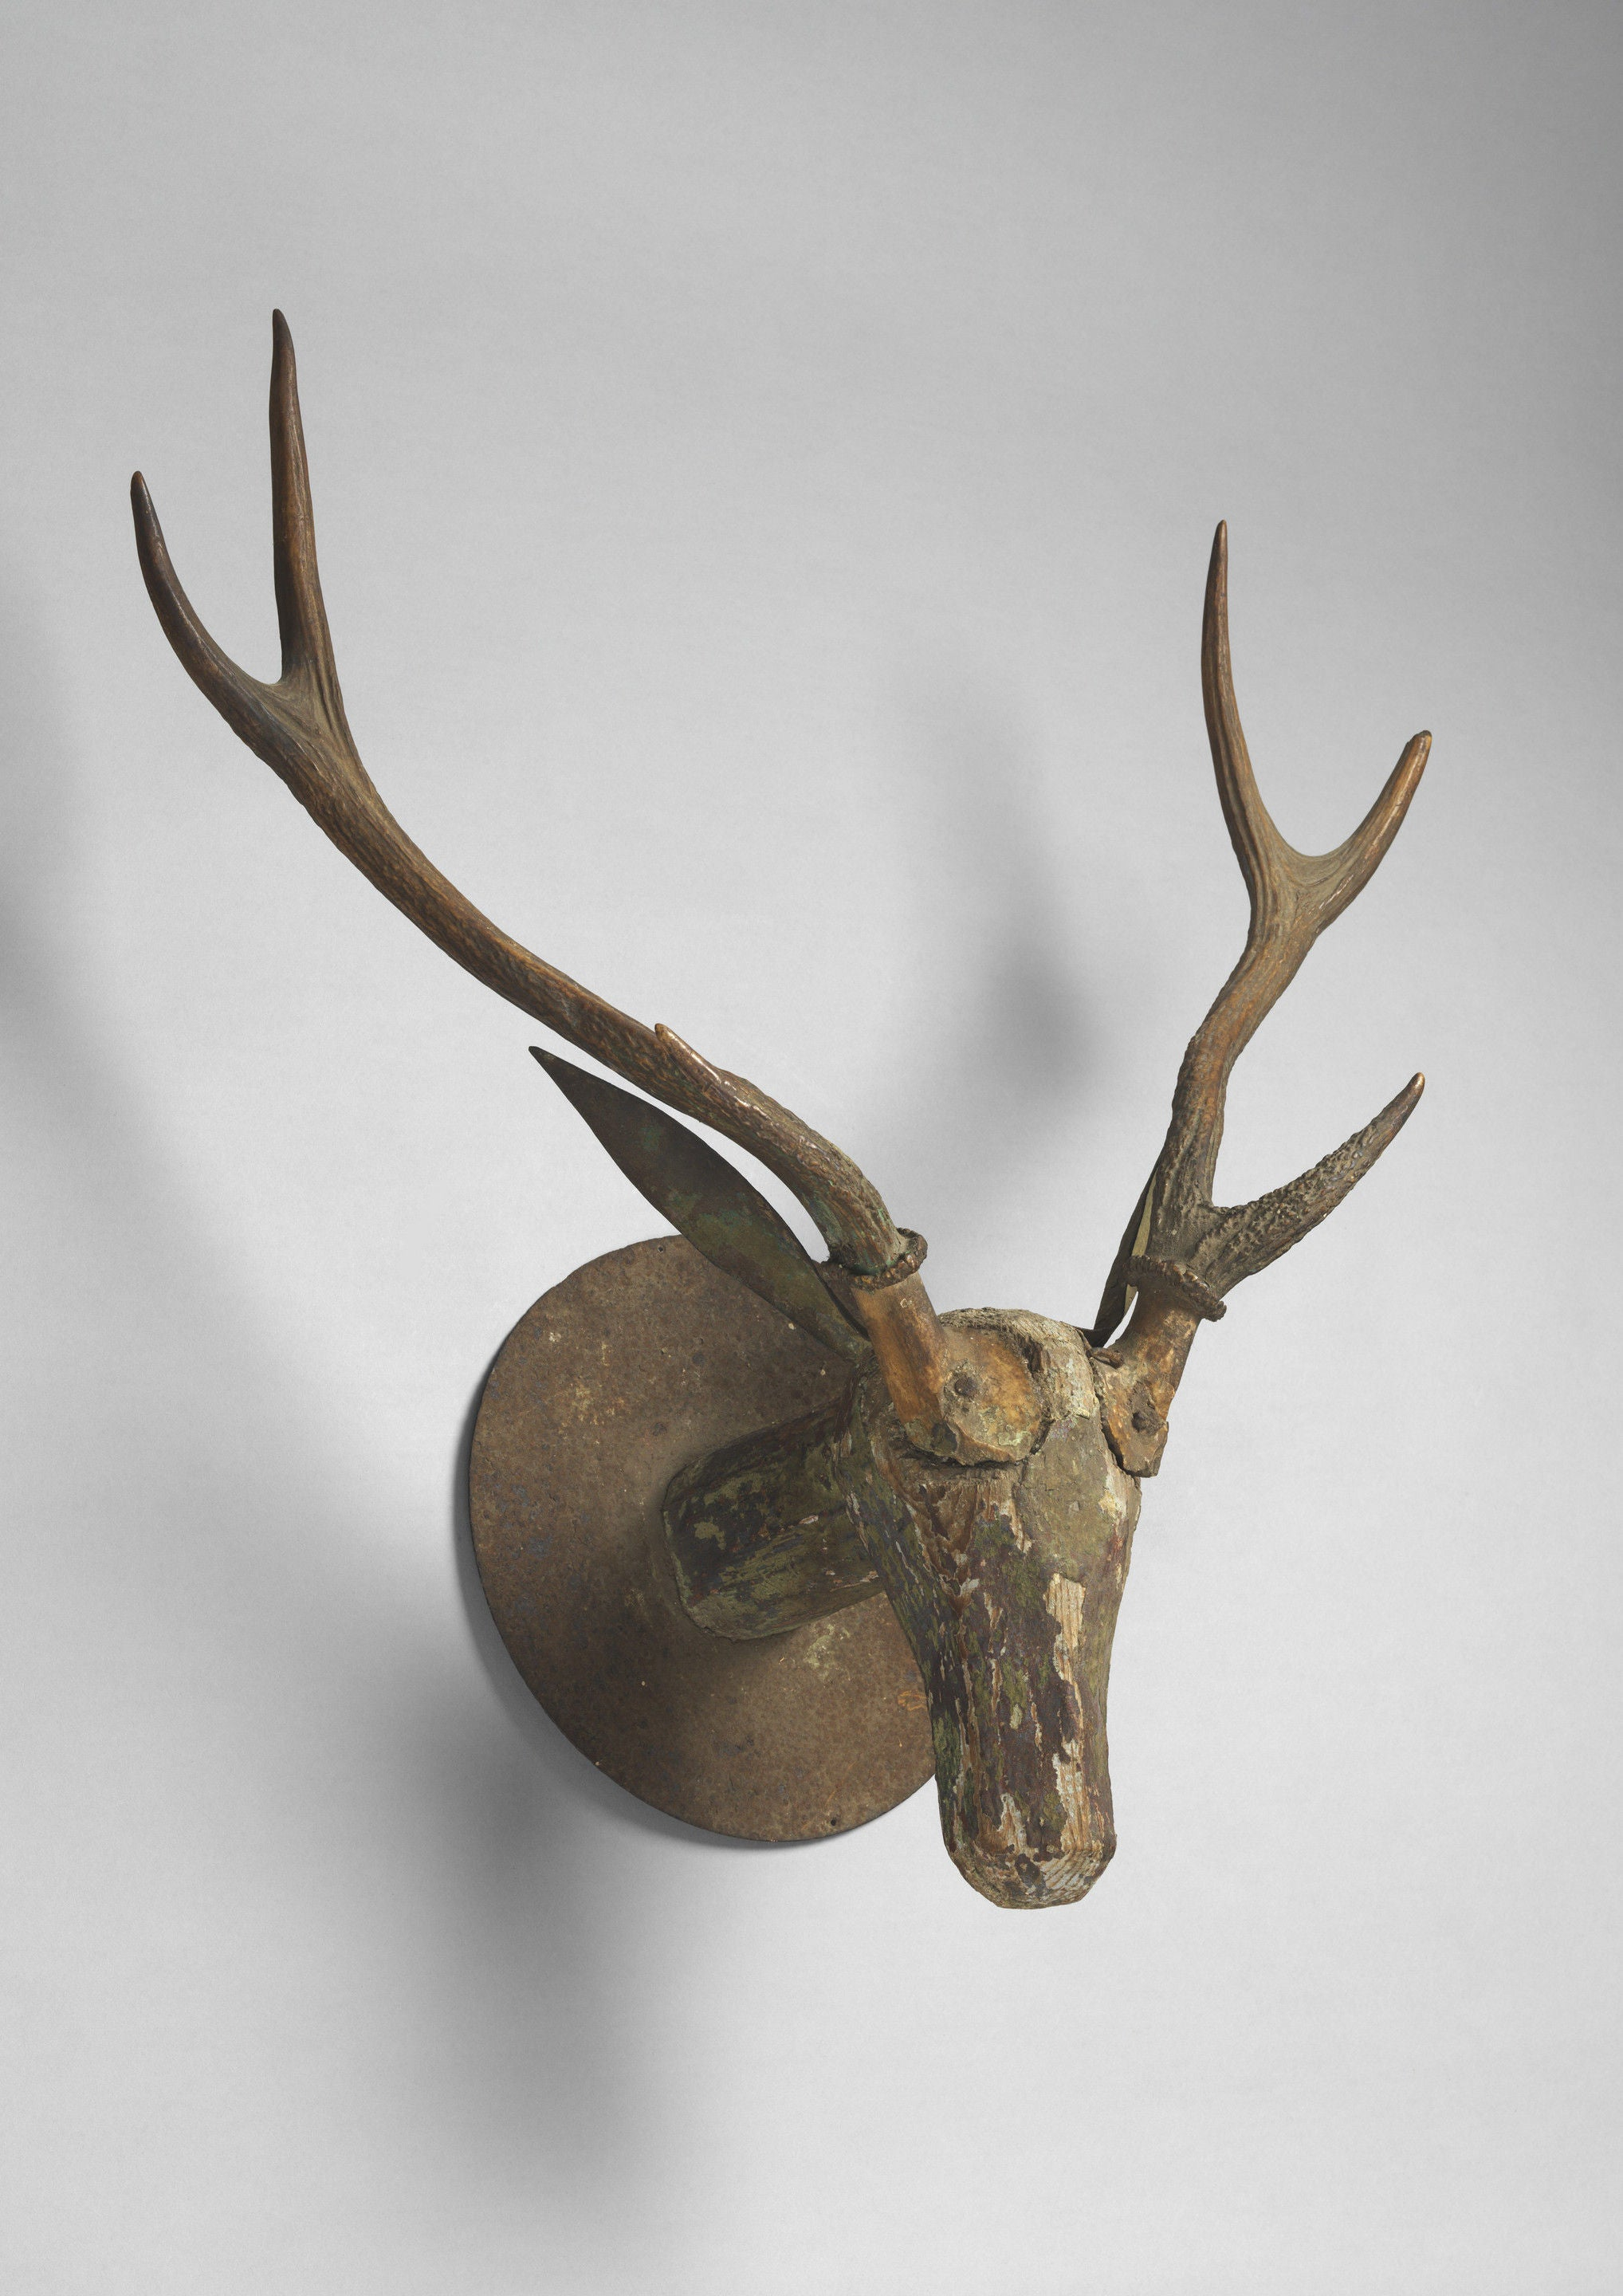 Rare Primitive Sculptural Stag's Head Trophy